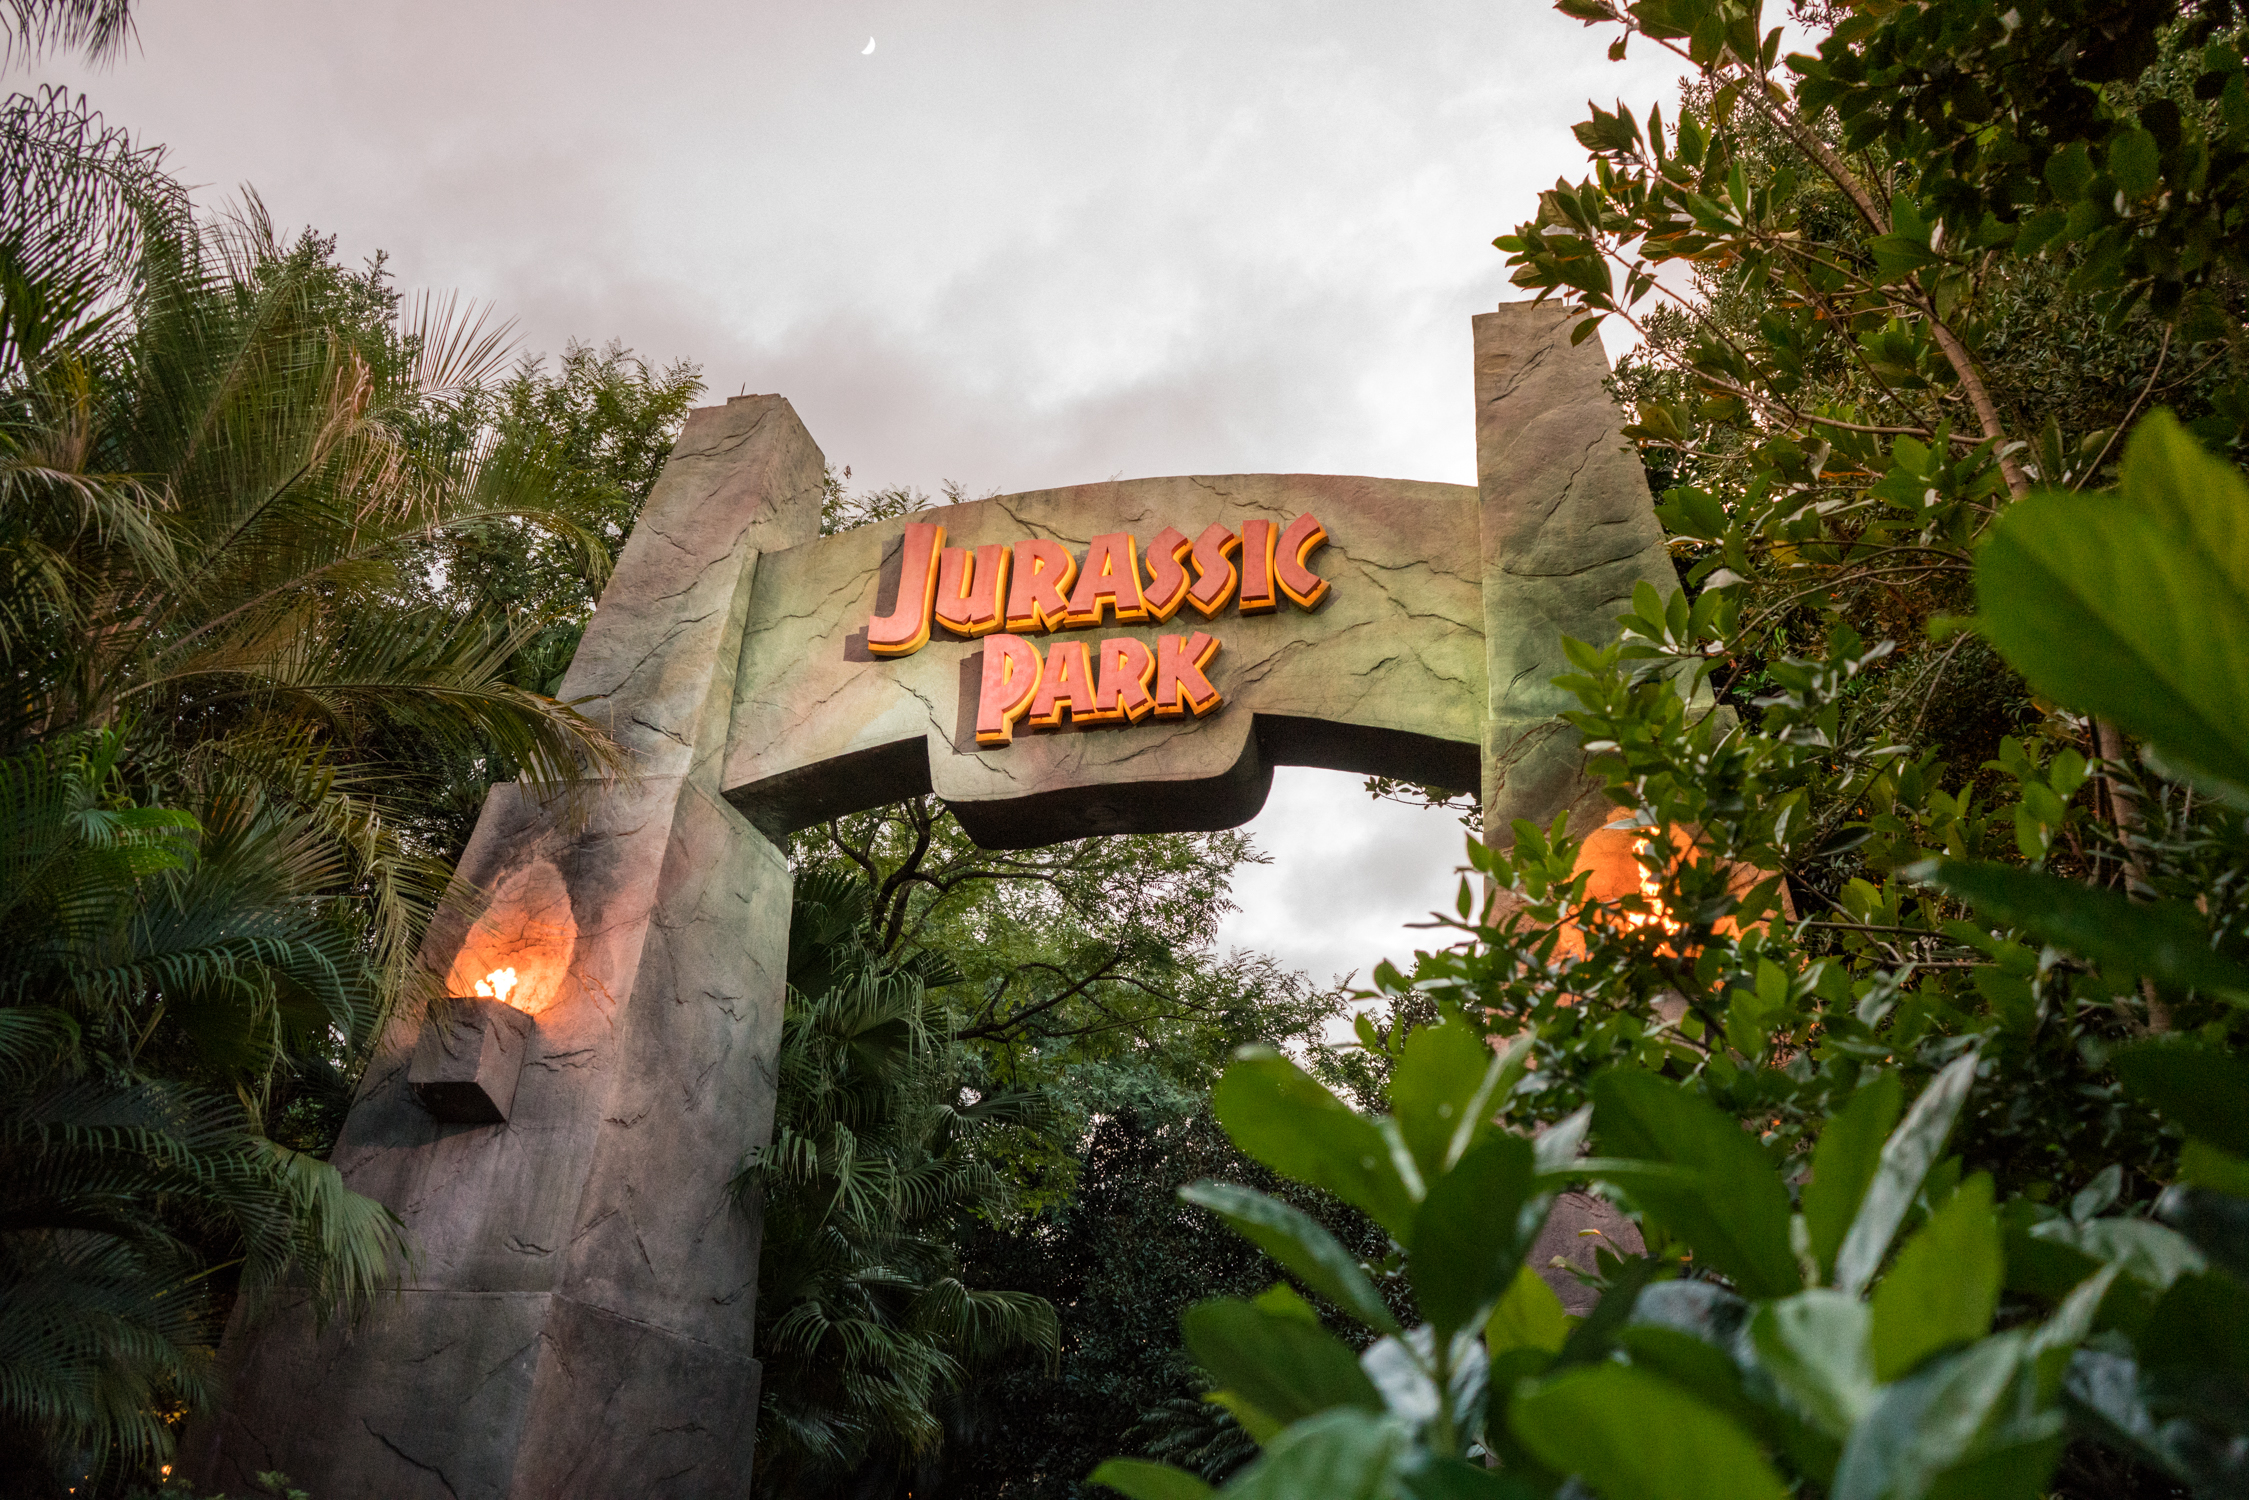 A stone gateway guards the entrance to Jurassic Park